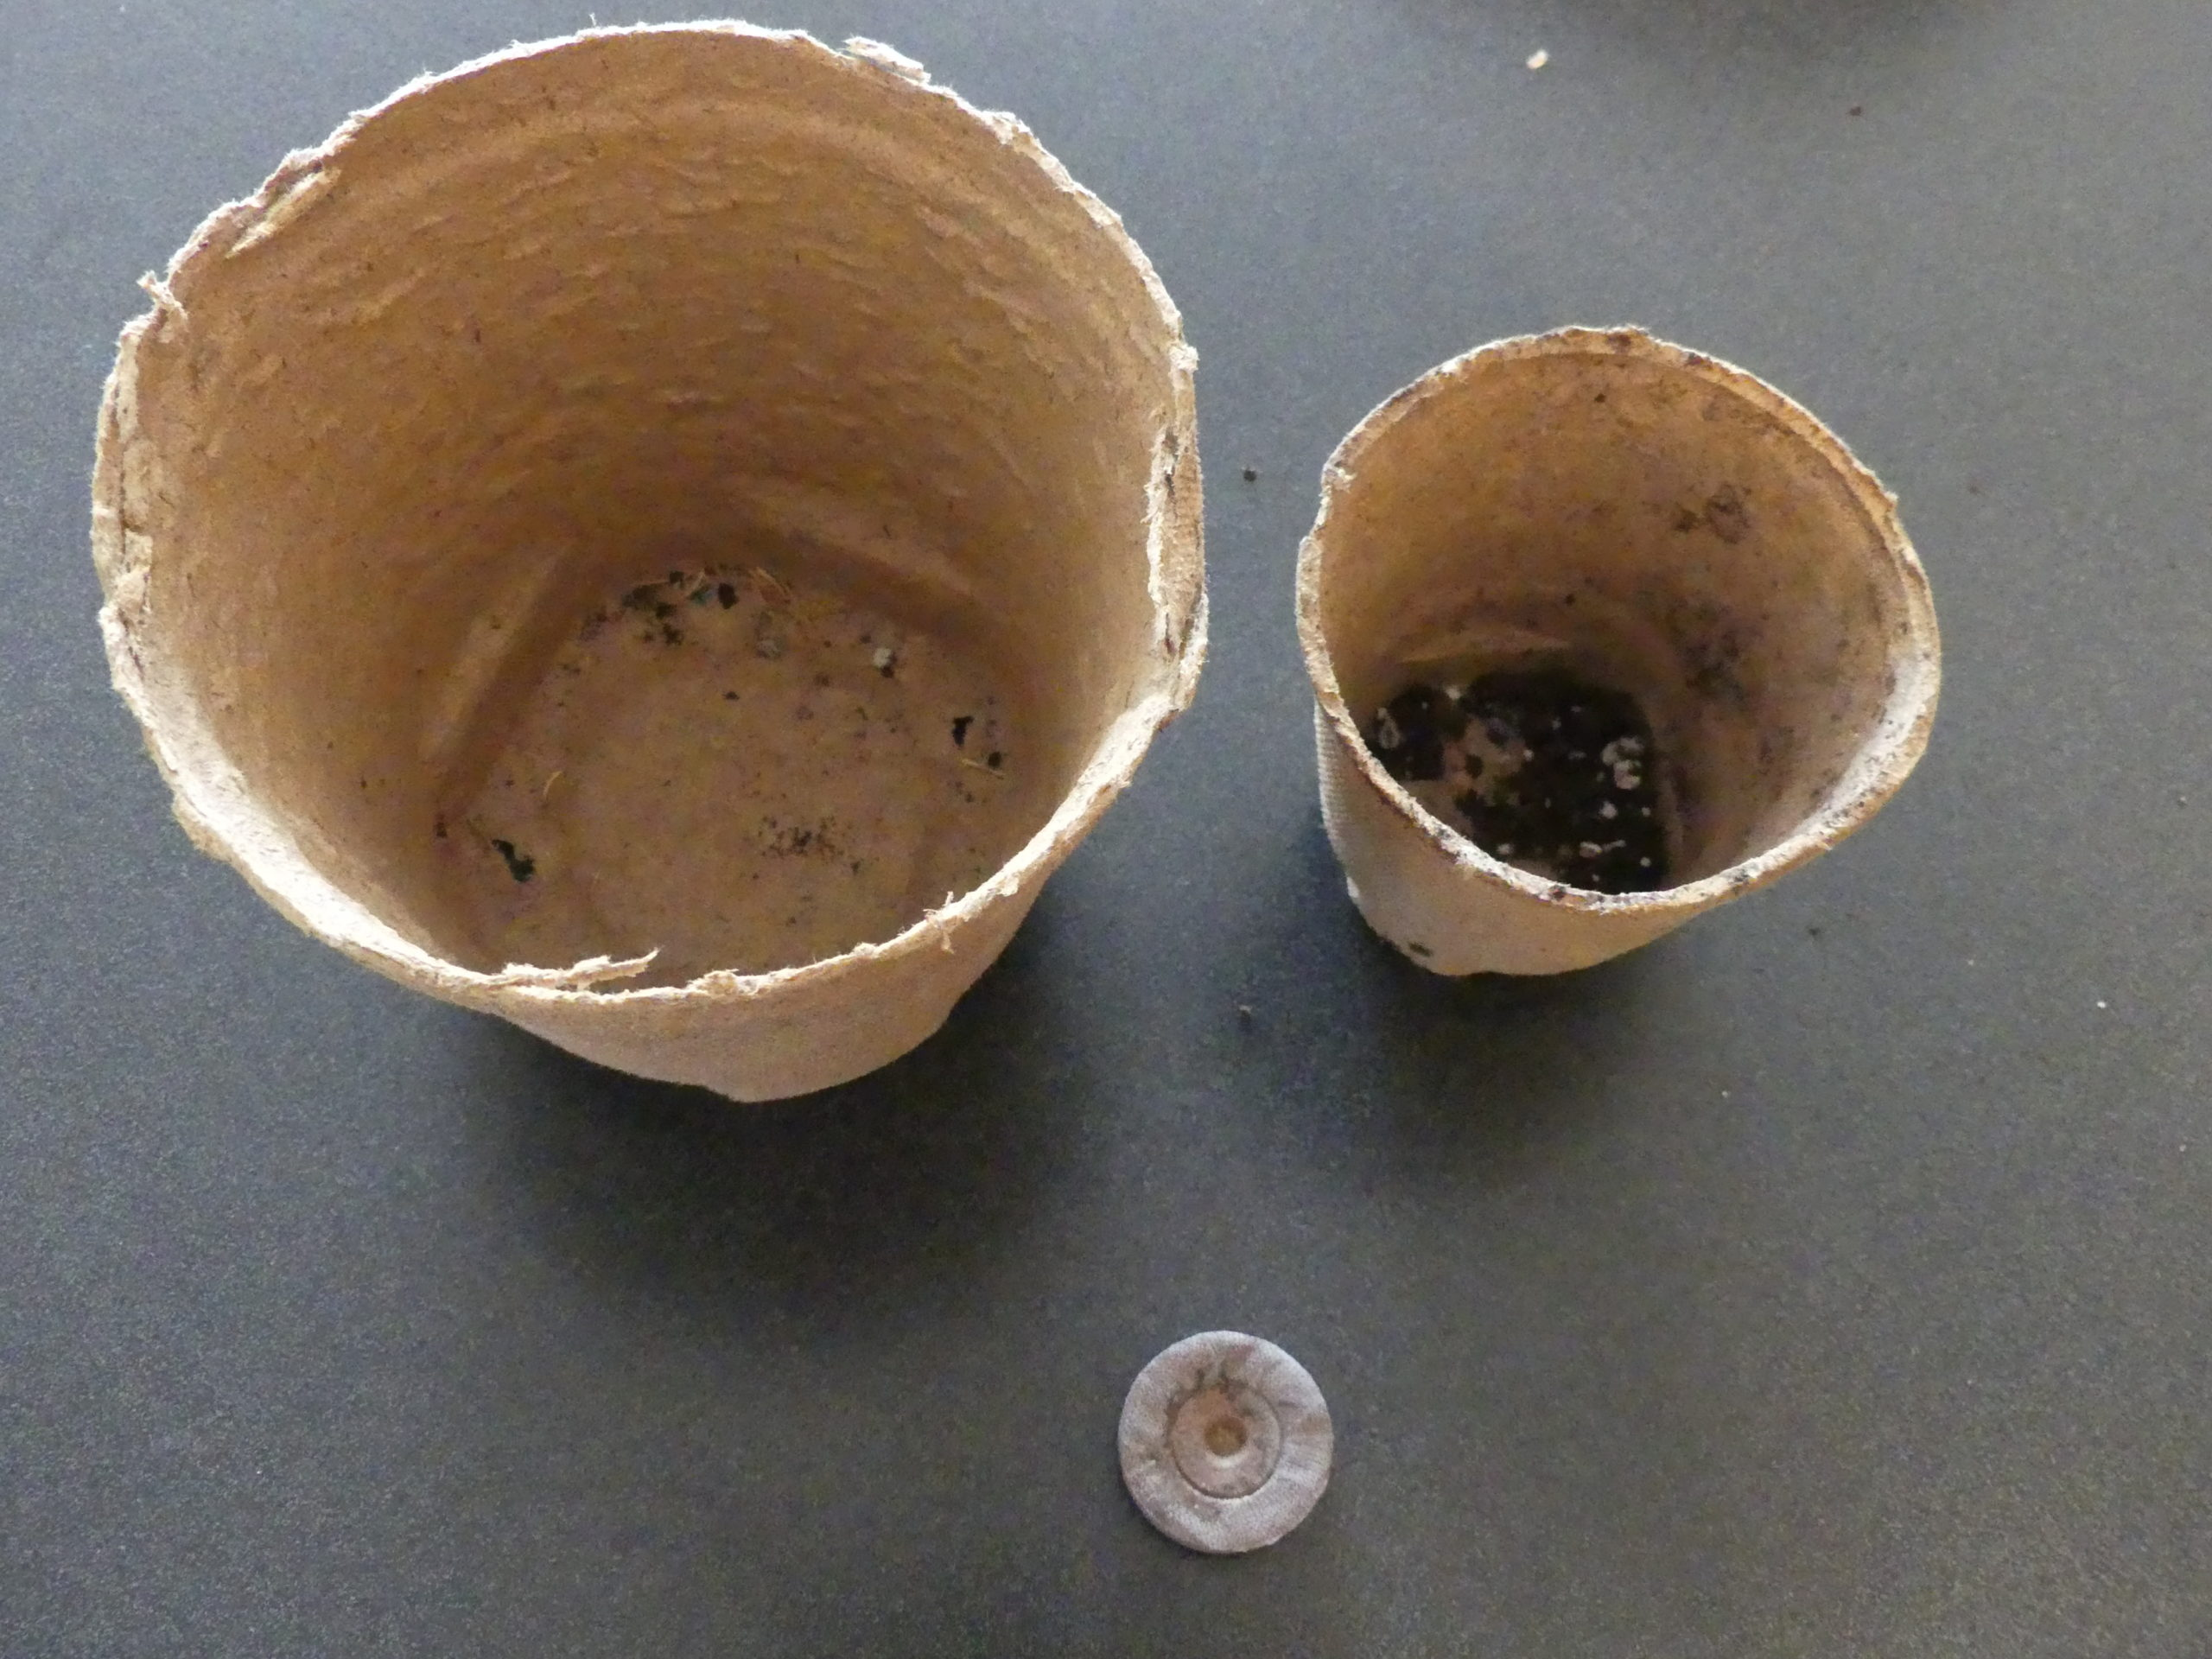 Peat pots and pellets from Jiffy offer convenient ways of starting vegetable plants at home them planting them directly into the garden pot and all with no transplant damage. Left is a 6-inch peat pot, right, a 4-inch, and bottom is a compressed Jiffy pellet that just needs water to expand for seeding. ANDREW MESSINGER